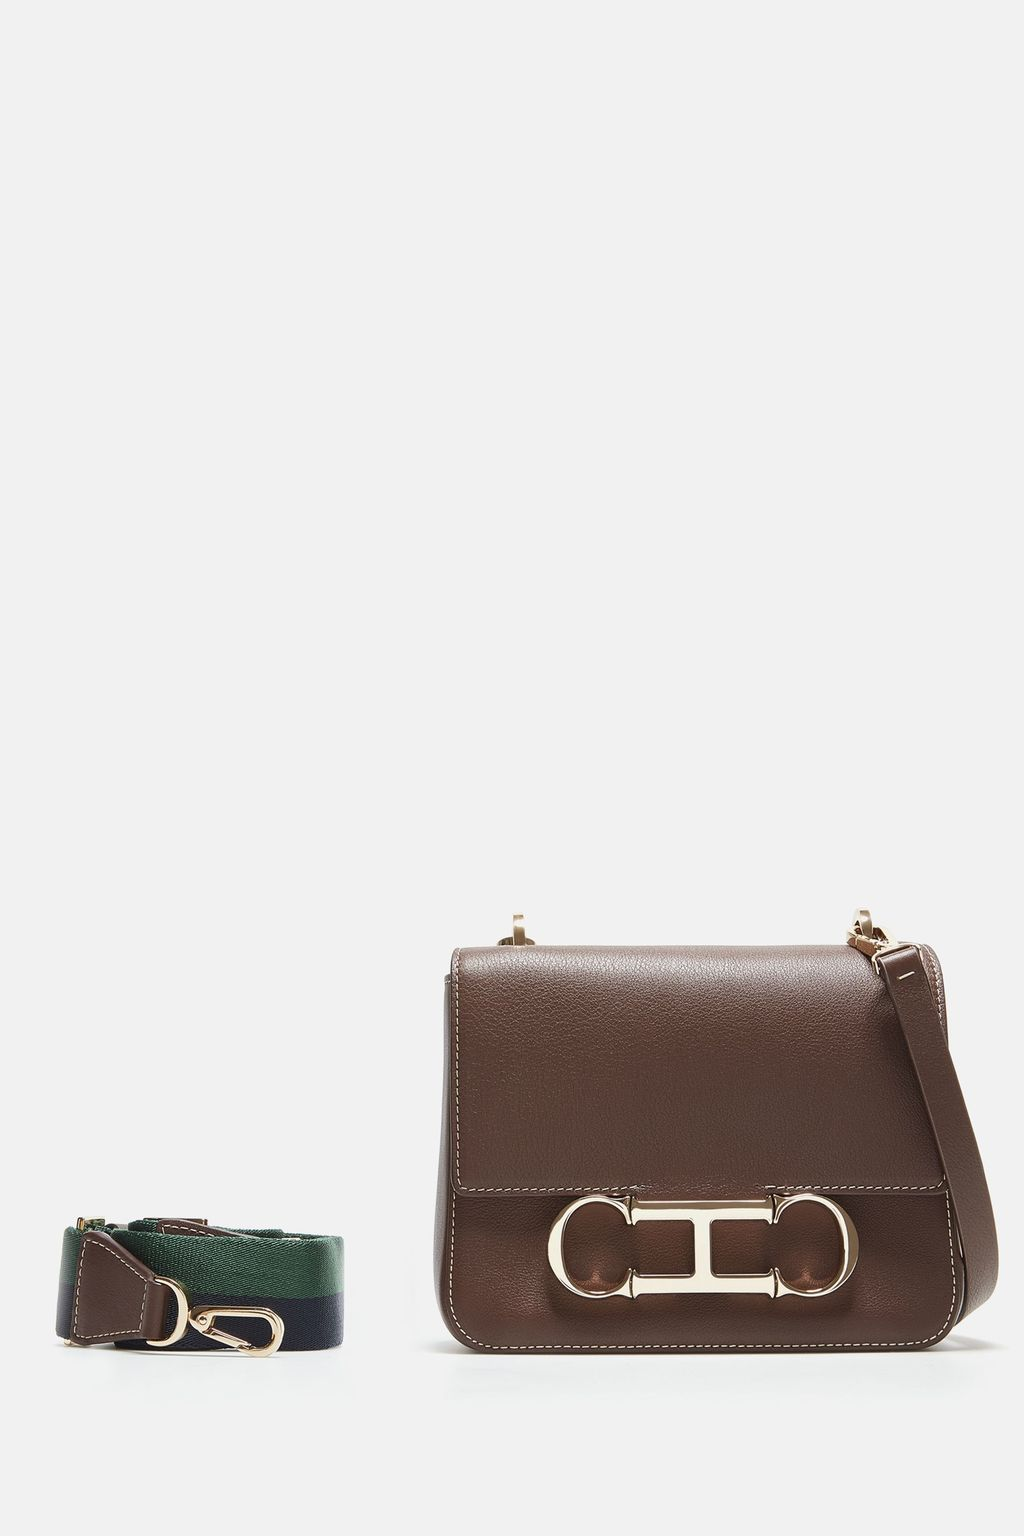 Initials Insignia | Small shoulder bag